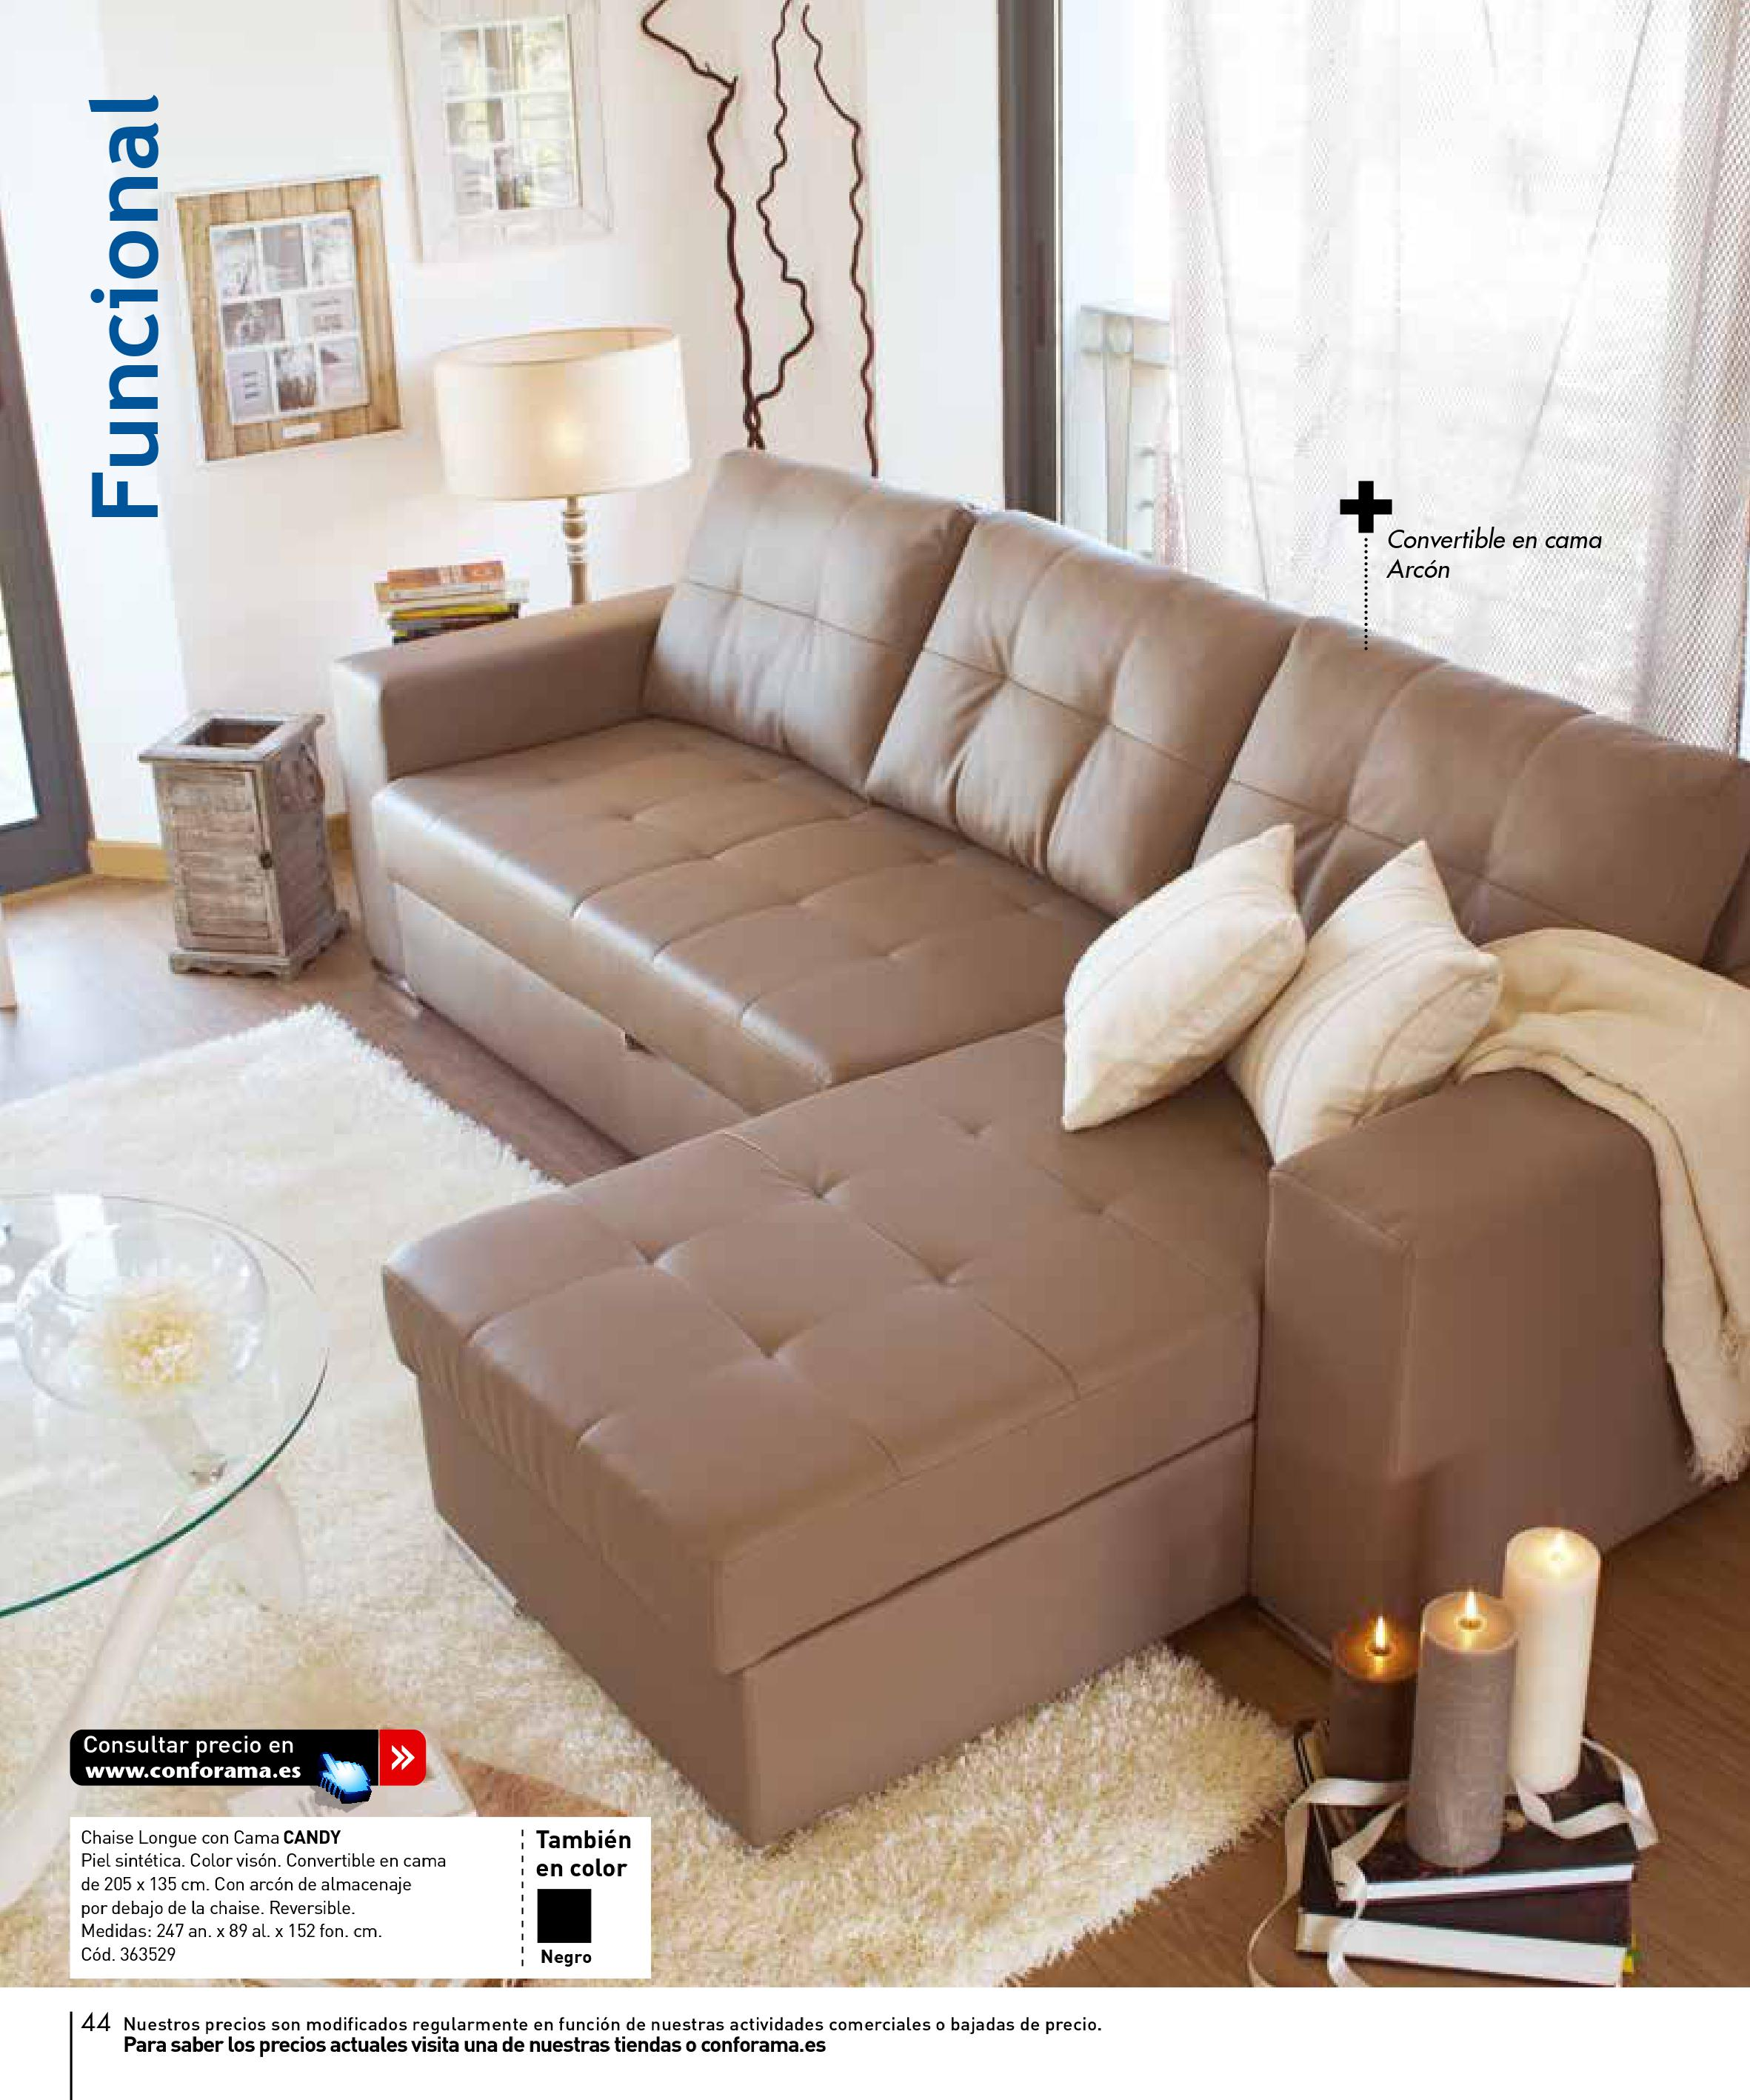 Sofas conforama 201544 for Sofas conforama catalogo